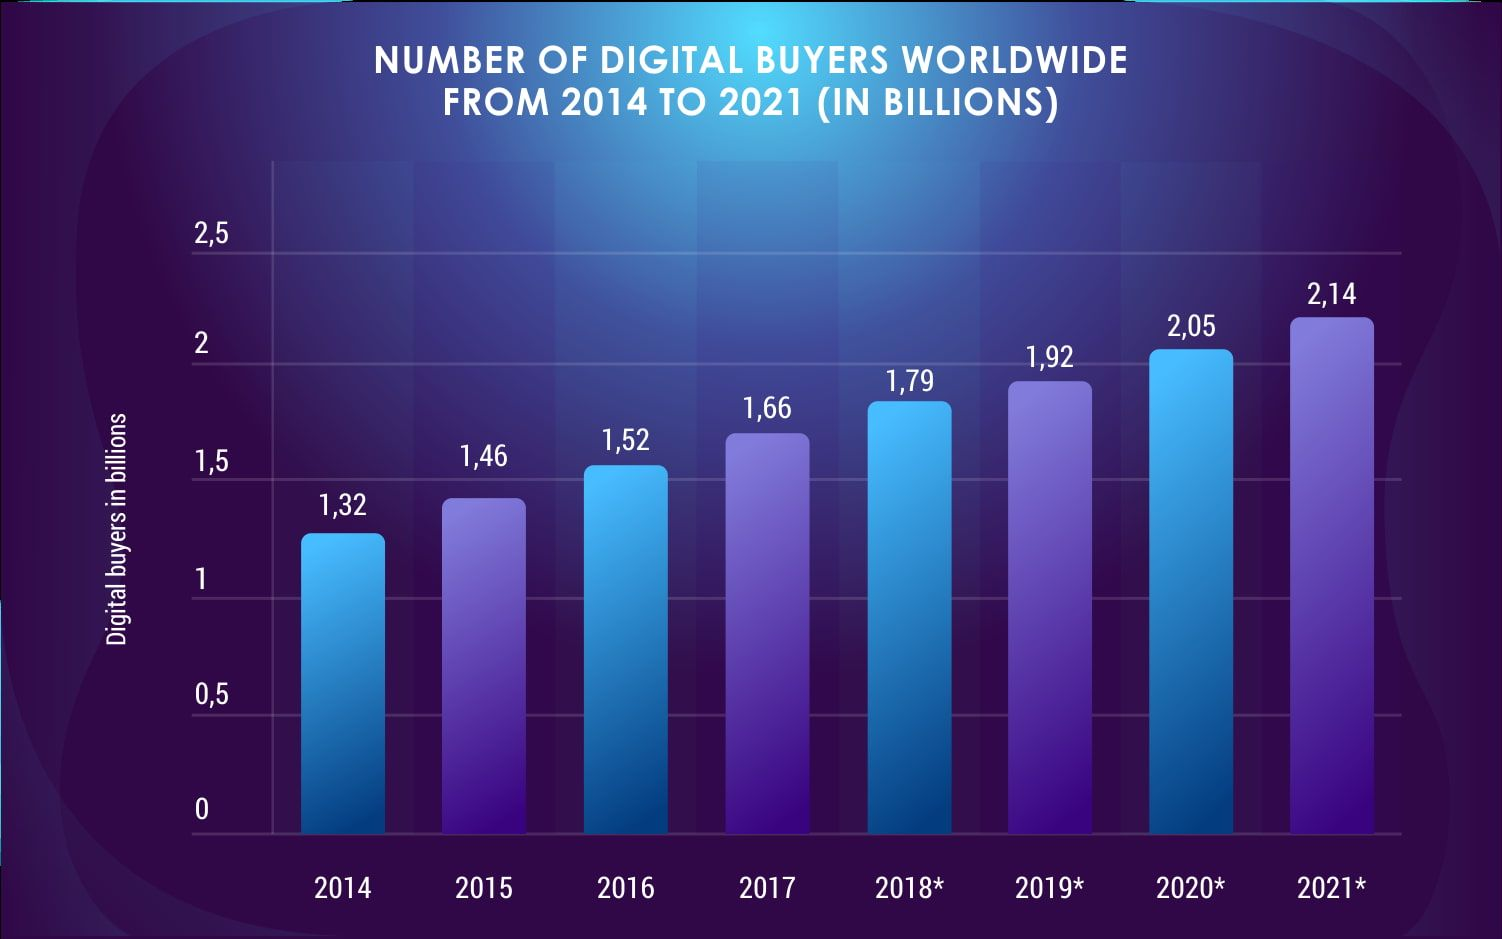 Number_of_digital_buyers_worldwide_from_2014_to_2021